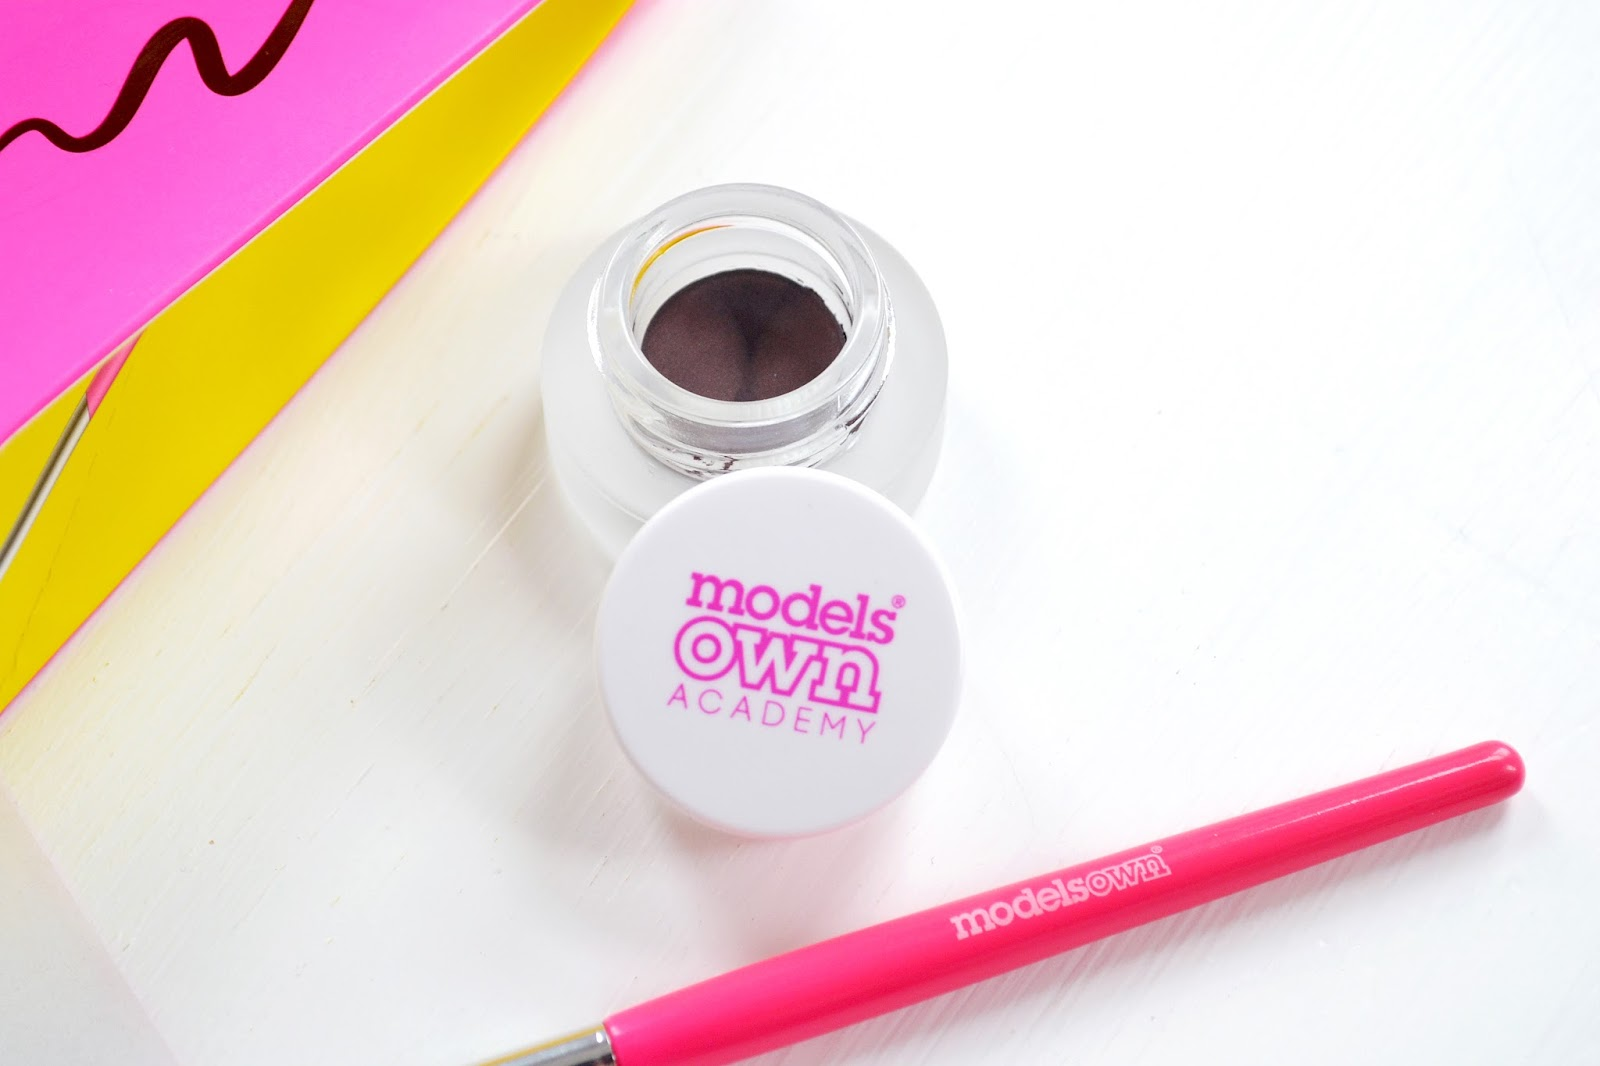 An affordable Gel Eyeliner in brown by Models Own